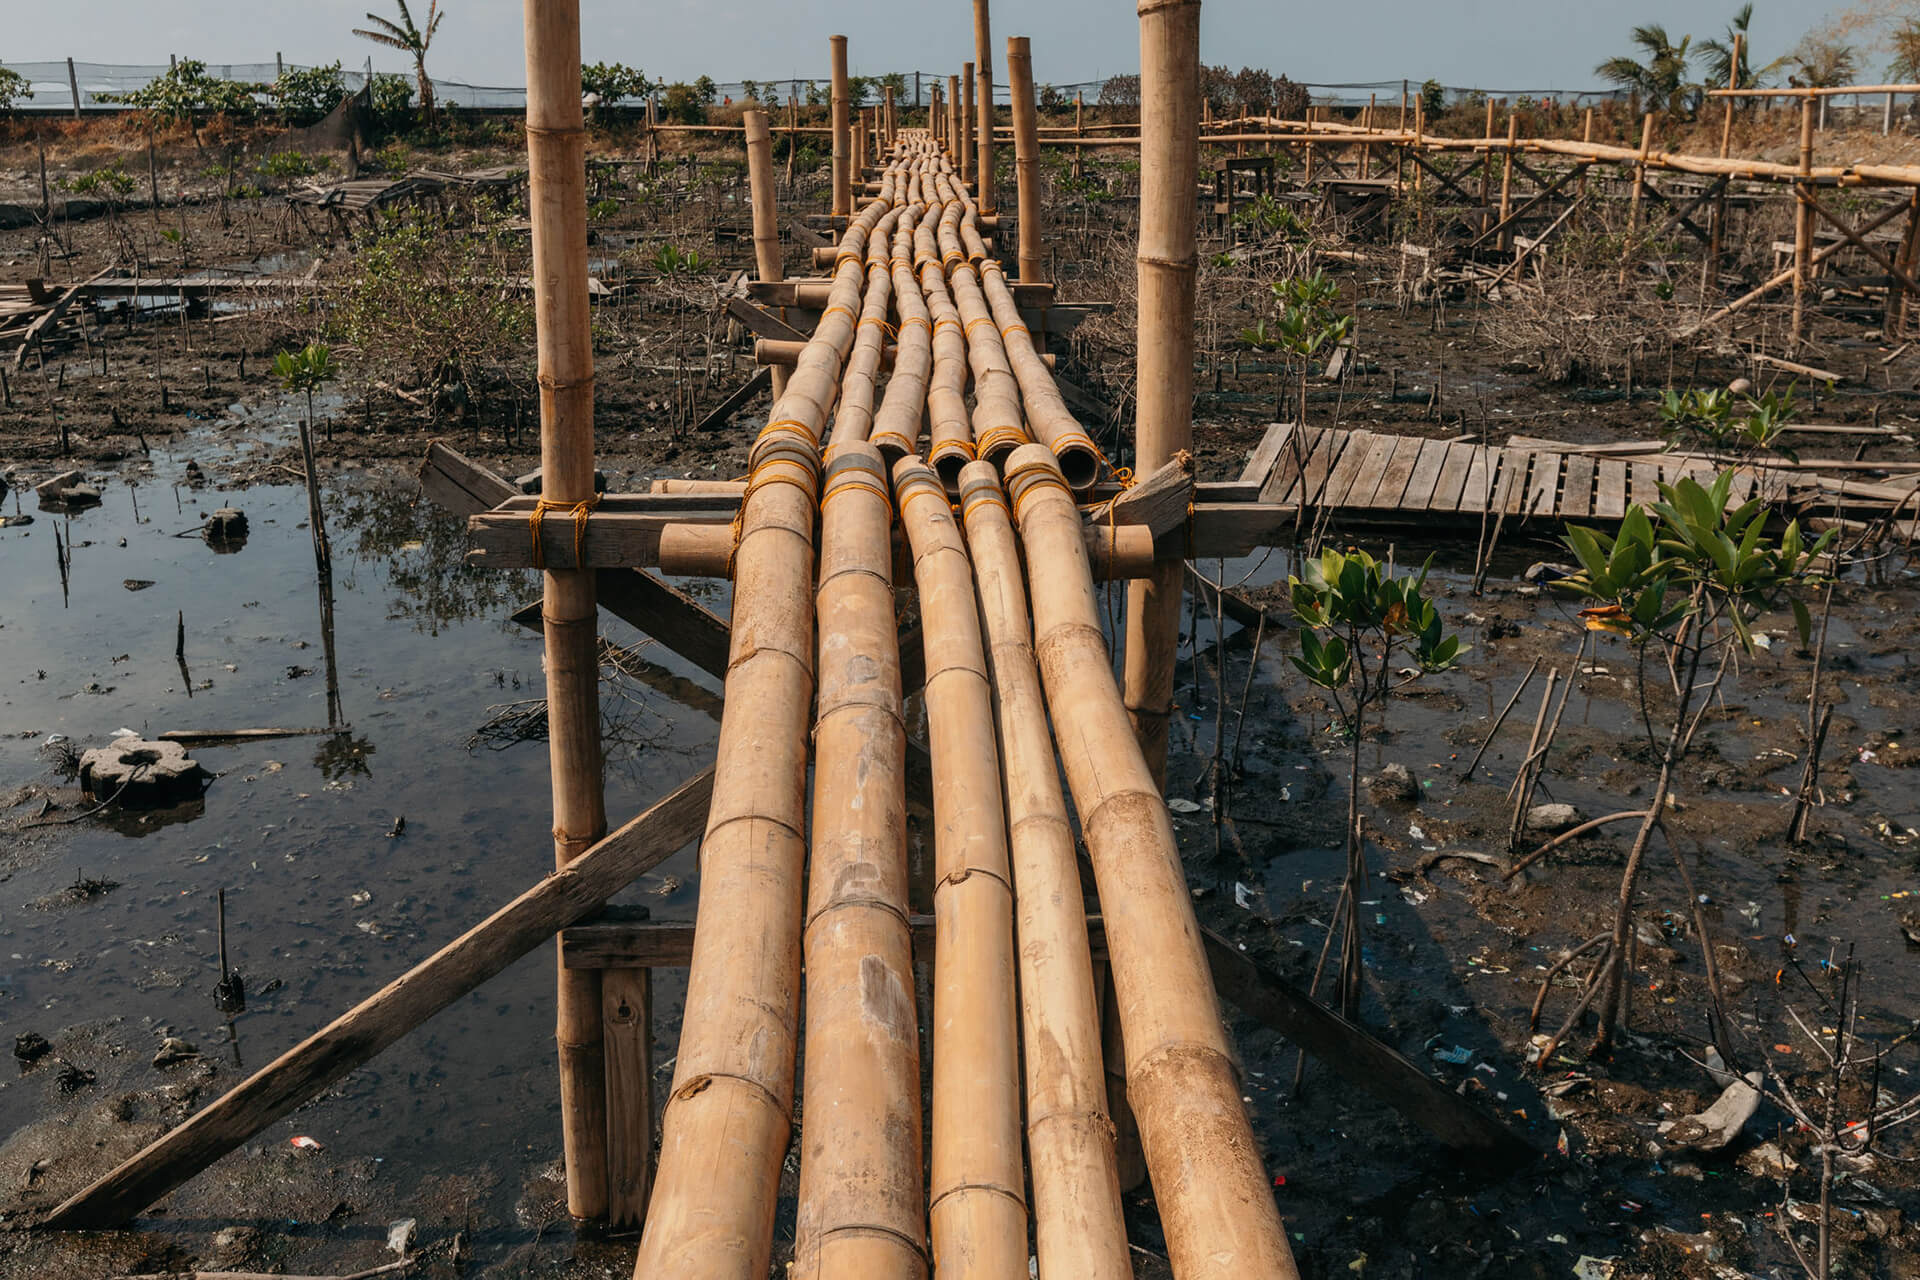 A makeshift bamboo footbridge over a rehabilitated area